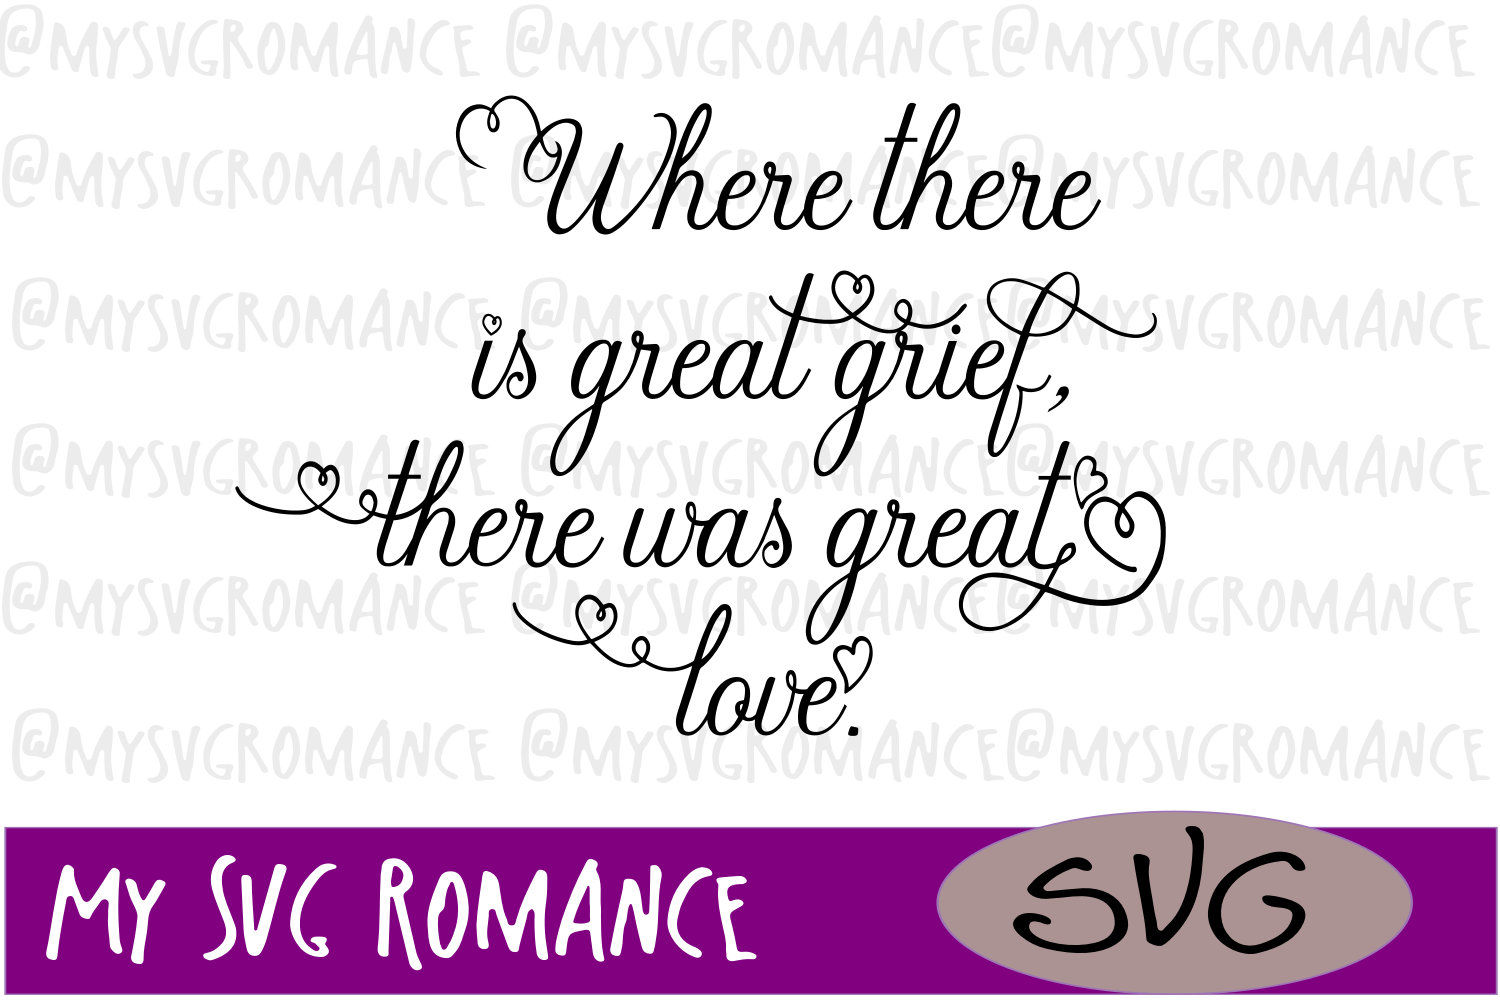 Where There Is Great Grief, There Was Great Love - SVG example image 1